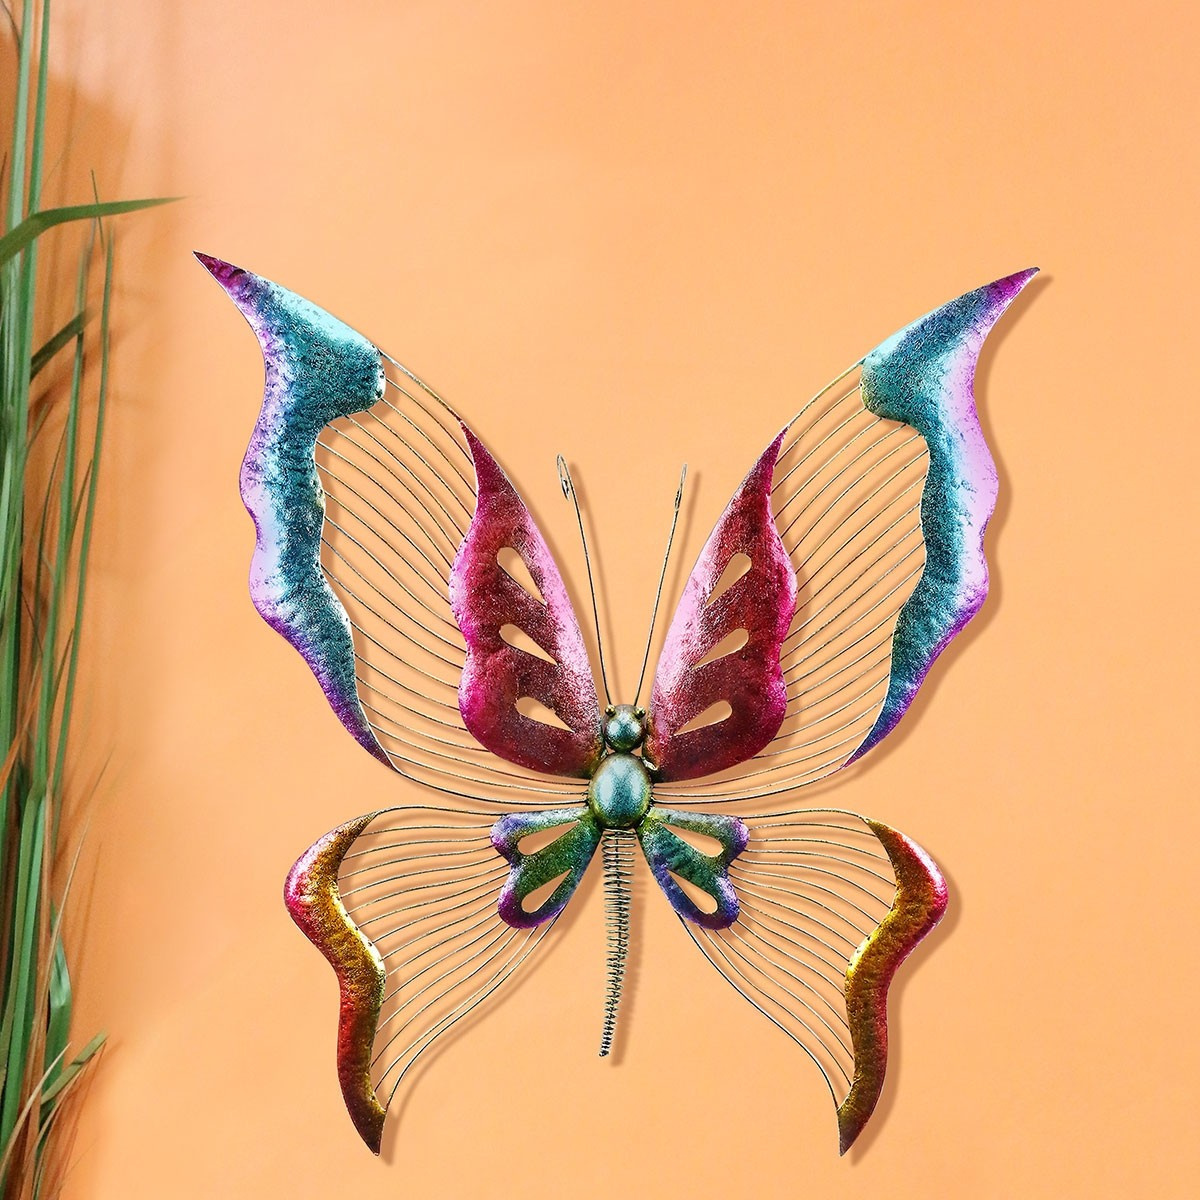 Dazzling Metallic Butterfly Wall Décor with Glossy Finish